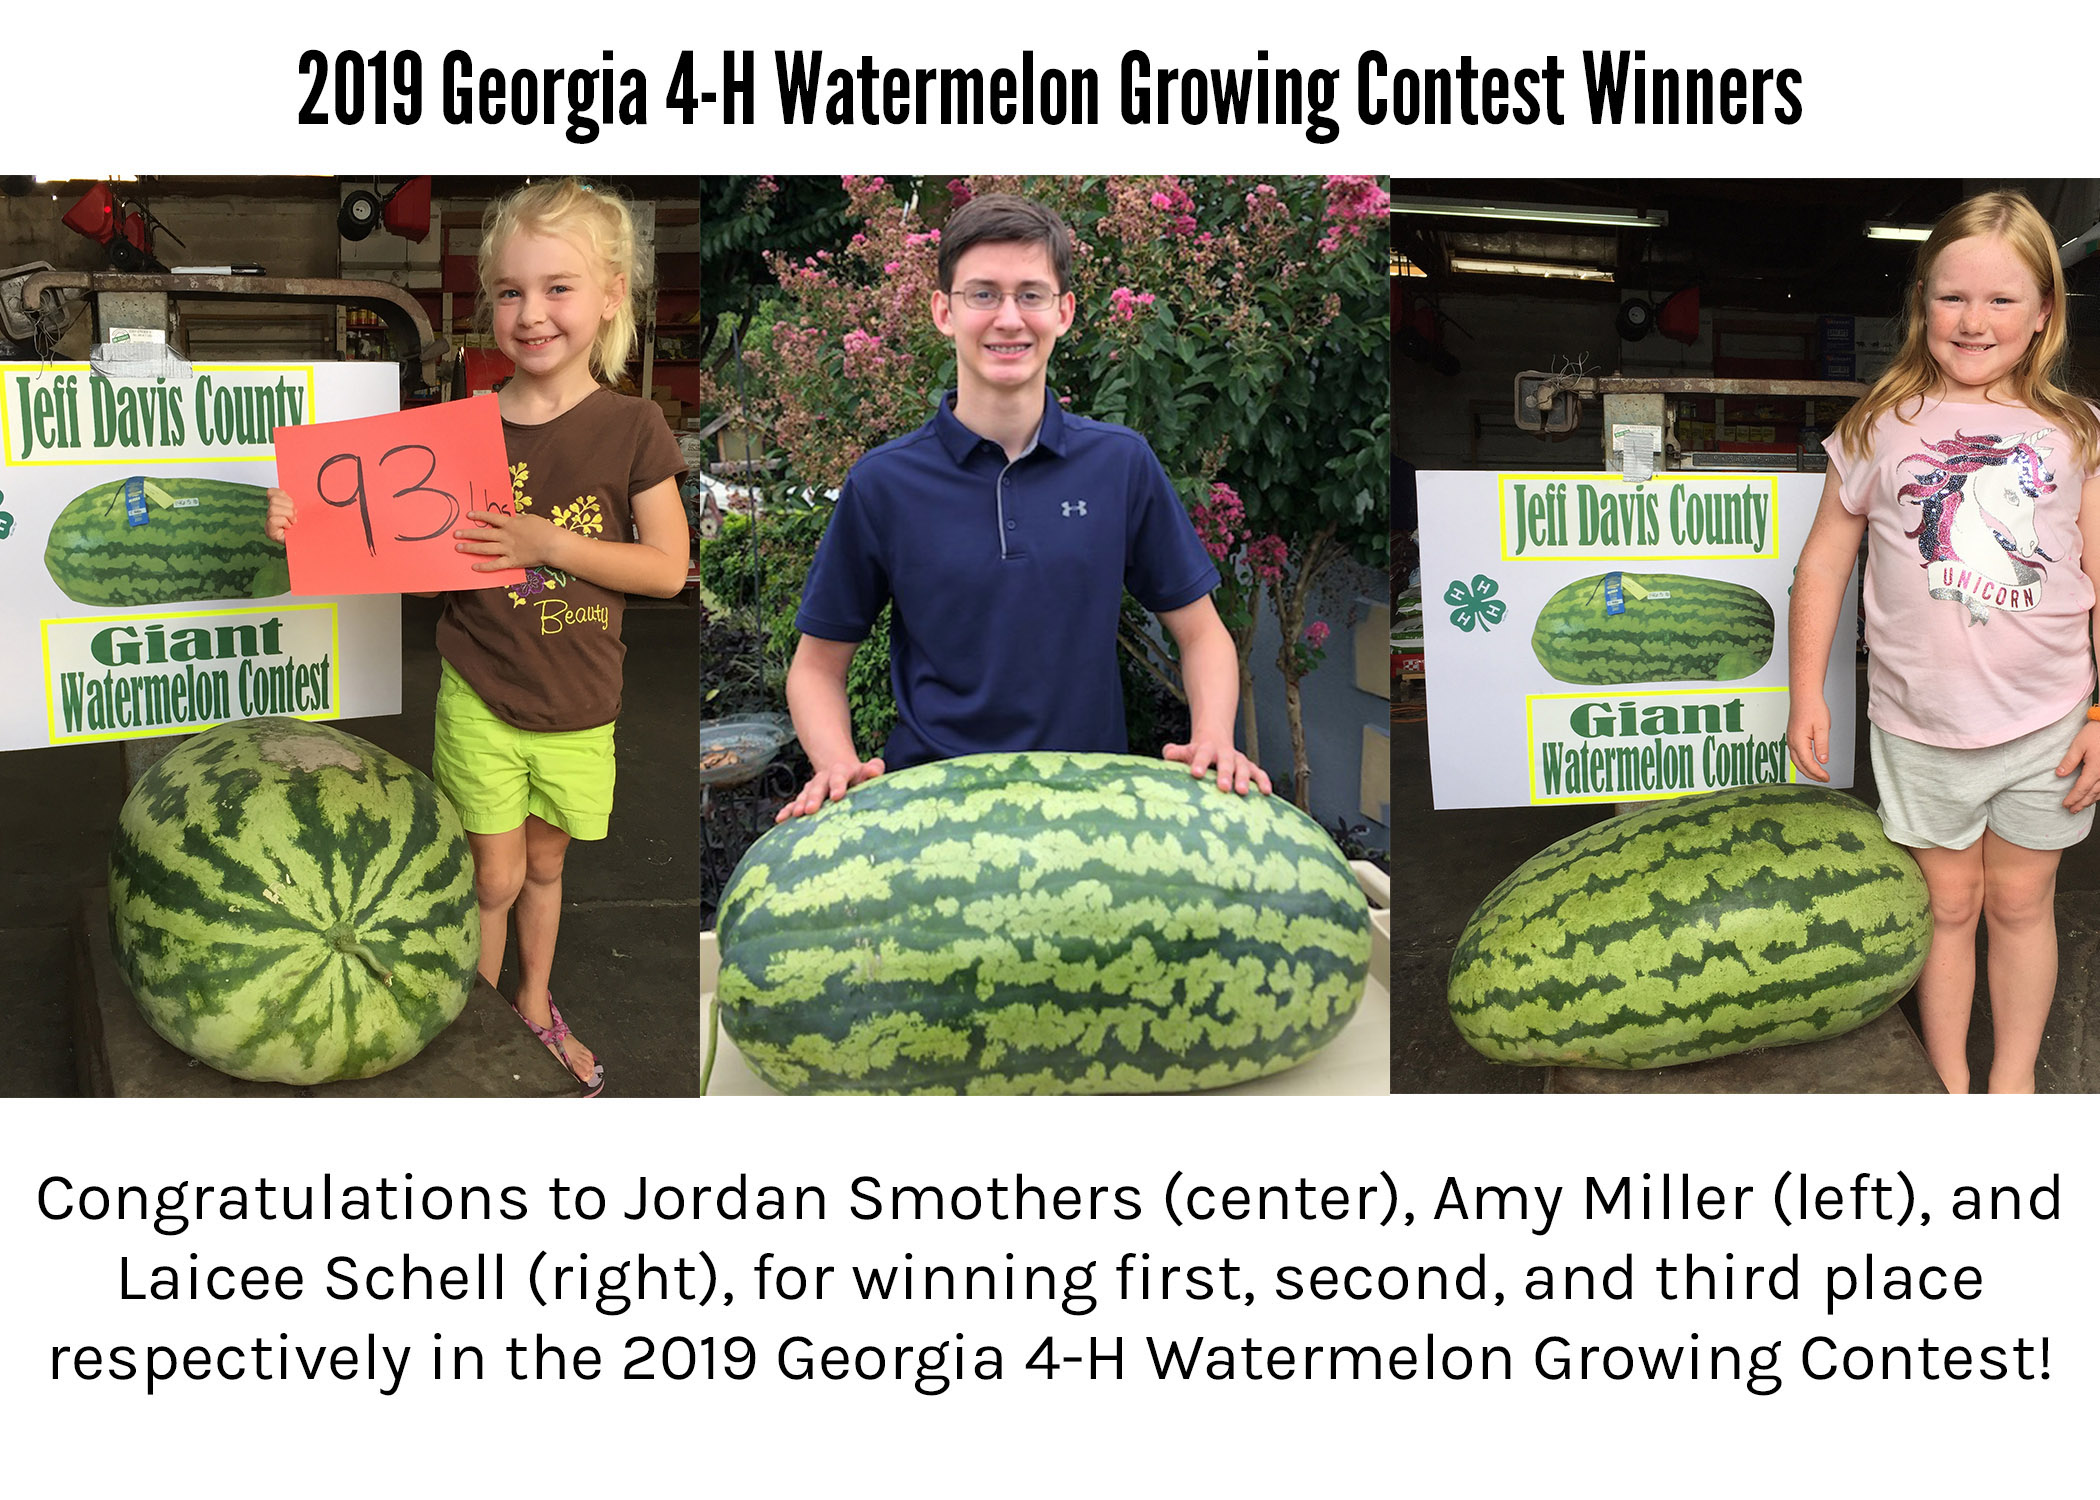 Jordan Smothers of Walton County won the 2019 Georgia 4-H Watermelon Growing Contest with his 135-pound watermelon. Amy Miller, far left, and Laicee Schell, both of Jeff Davis County, won second and third places with their 93- and 78-pound melons.